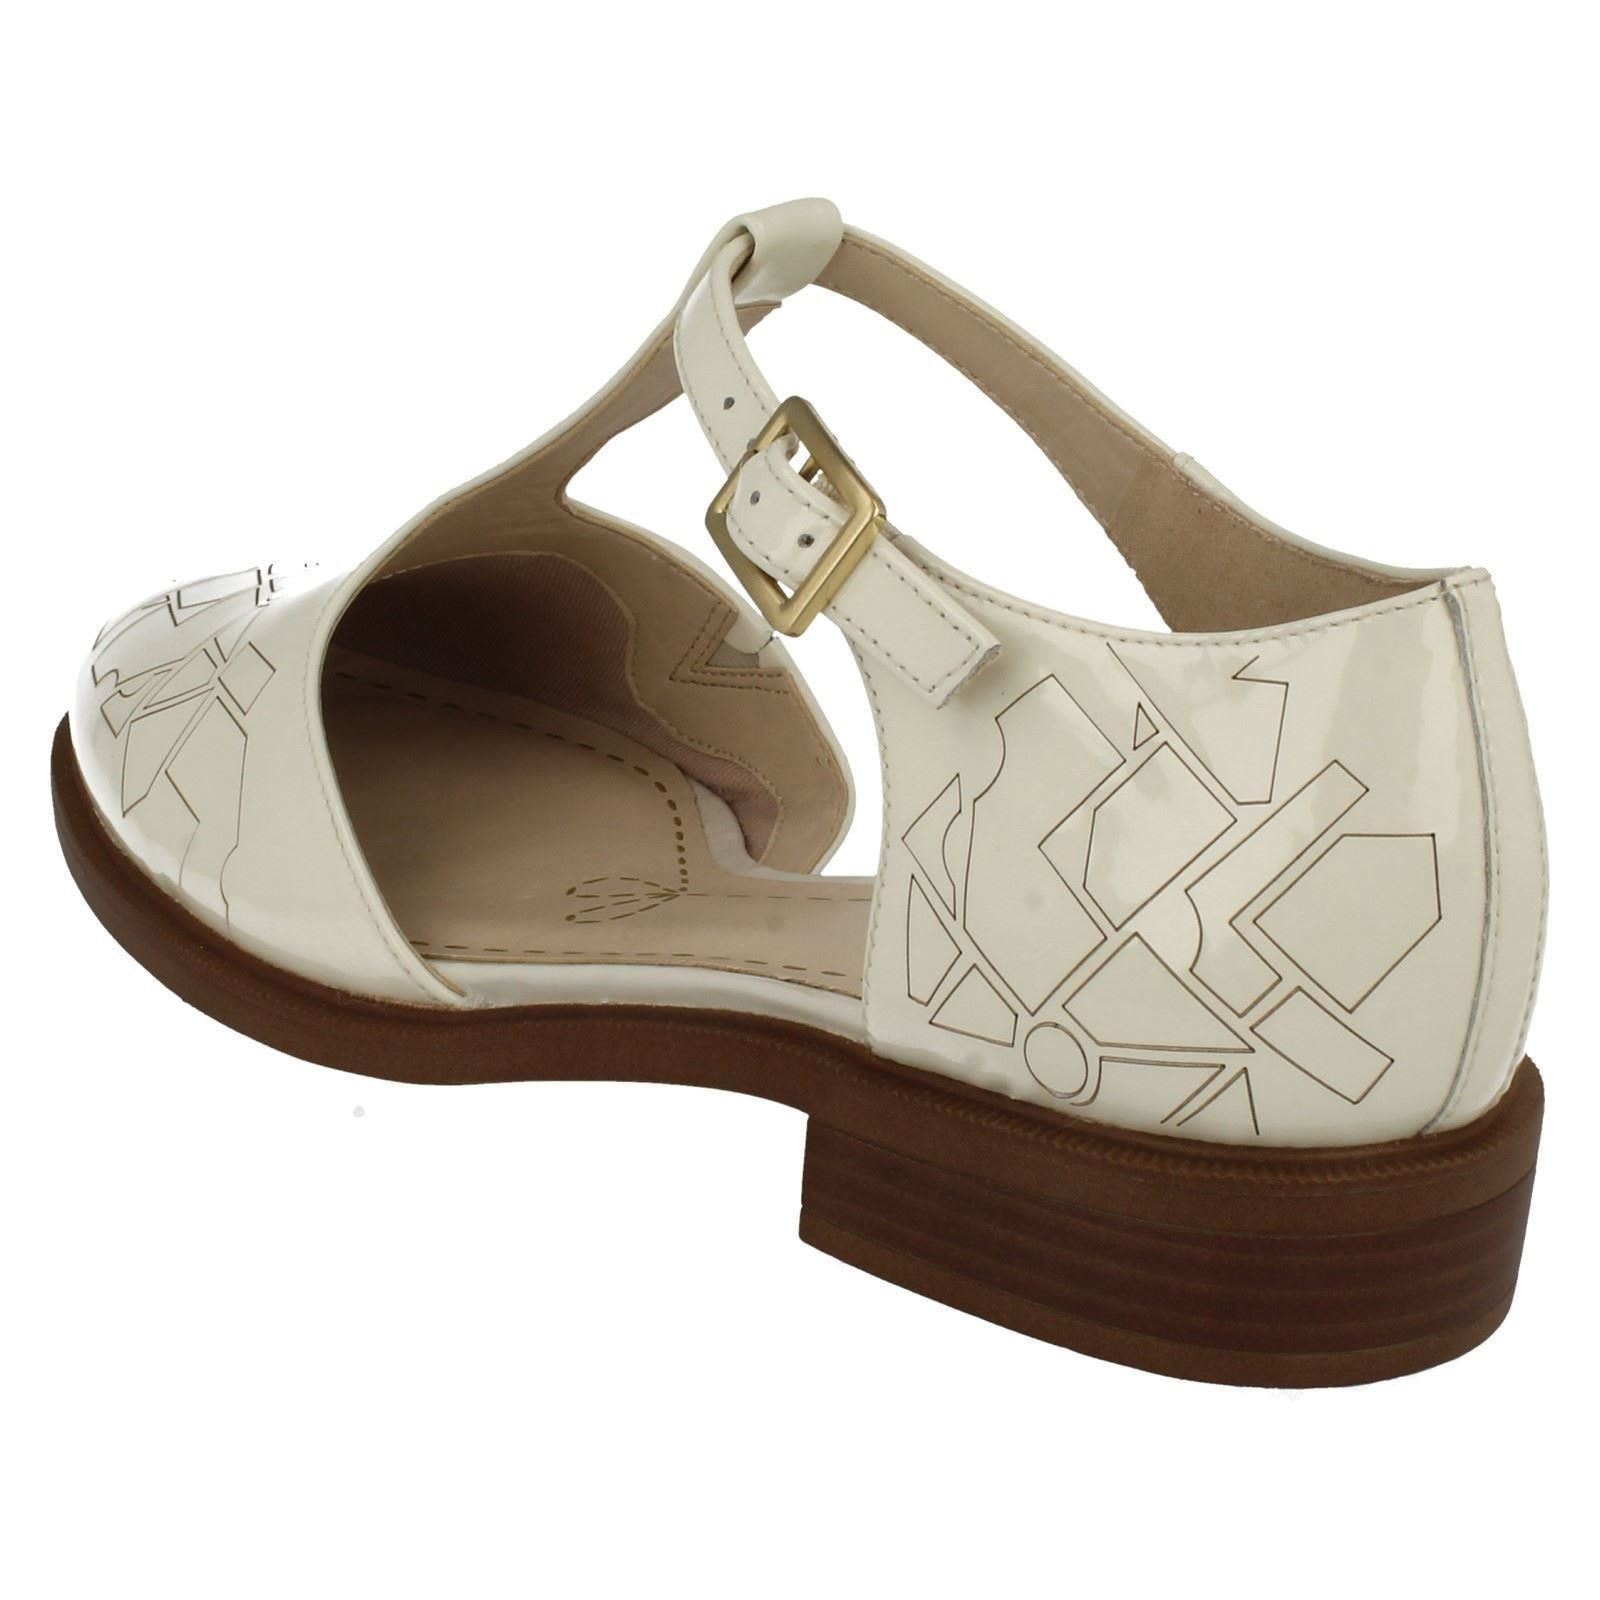 Clark Shoes Women Cut Out